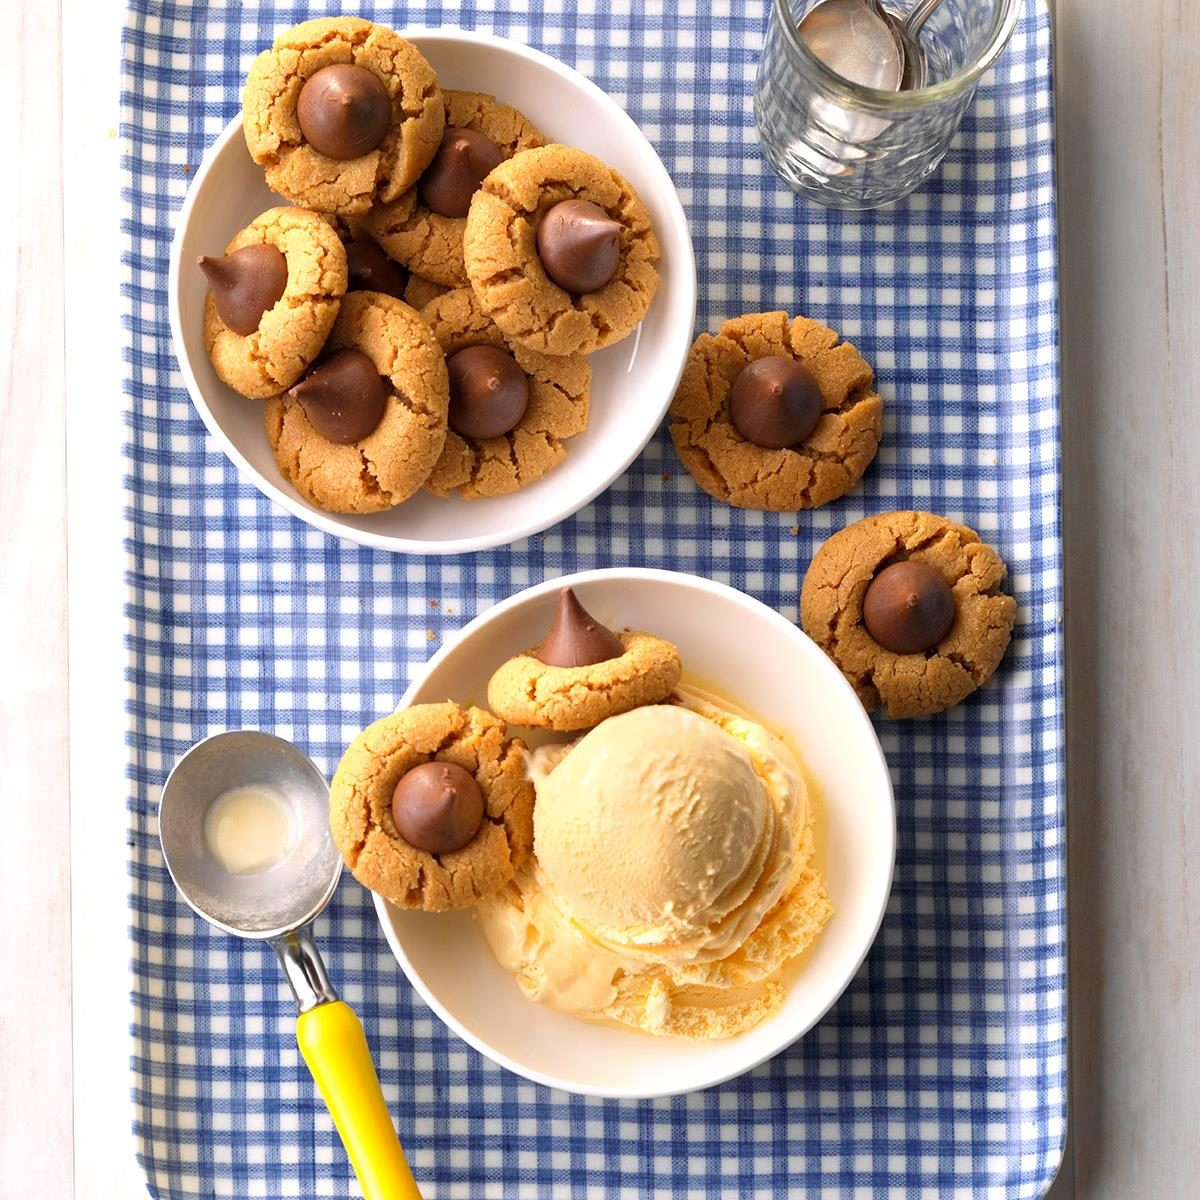 Bowl of peanutbutter kiss cookies with another bowl of ice cream